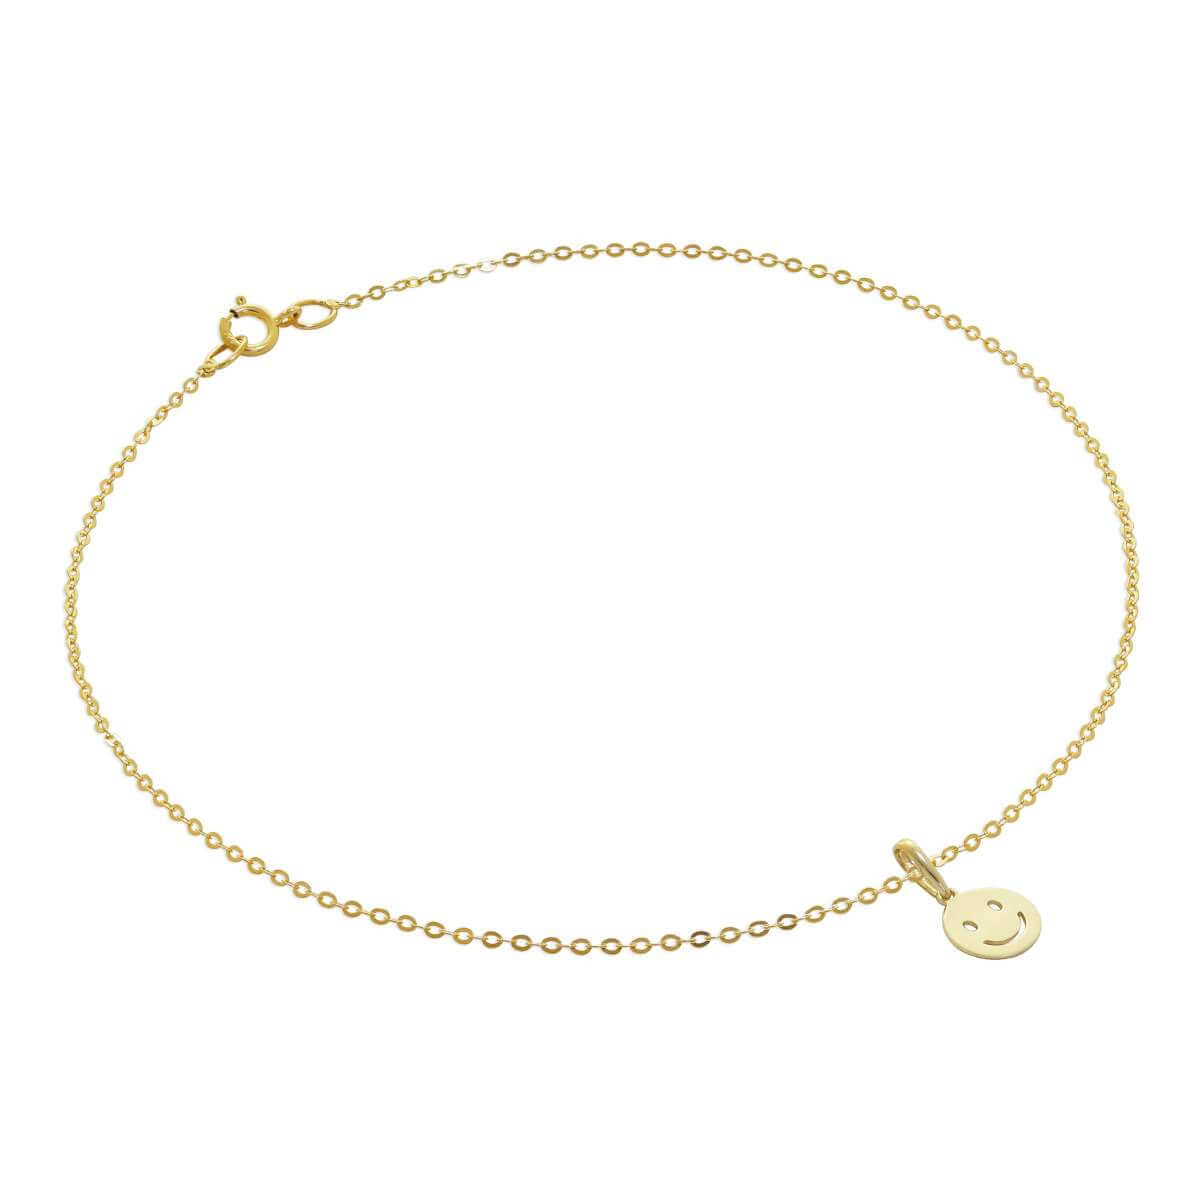 9ct Gold Hammered Trace Anklet with Smiling Face Emoji Charm - 9.5 Inches